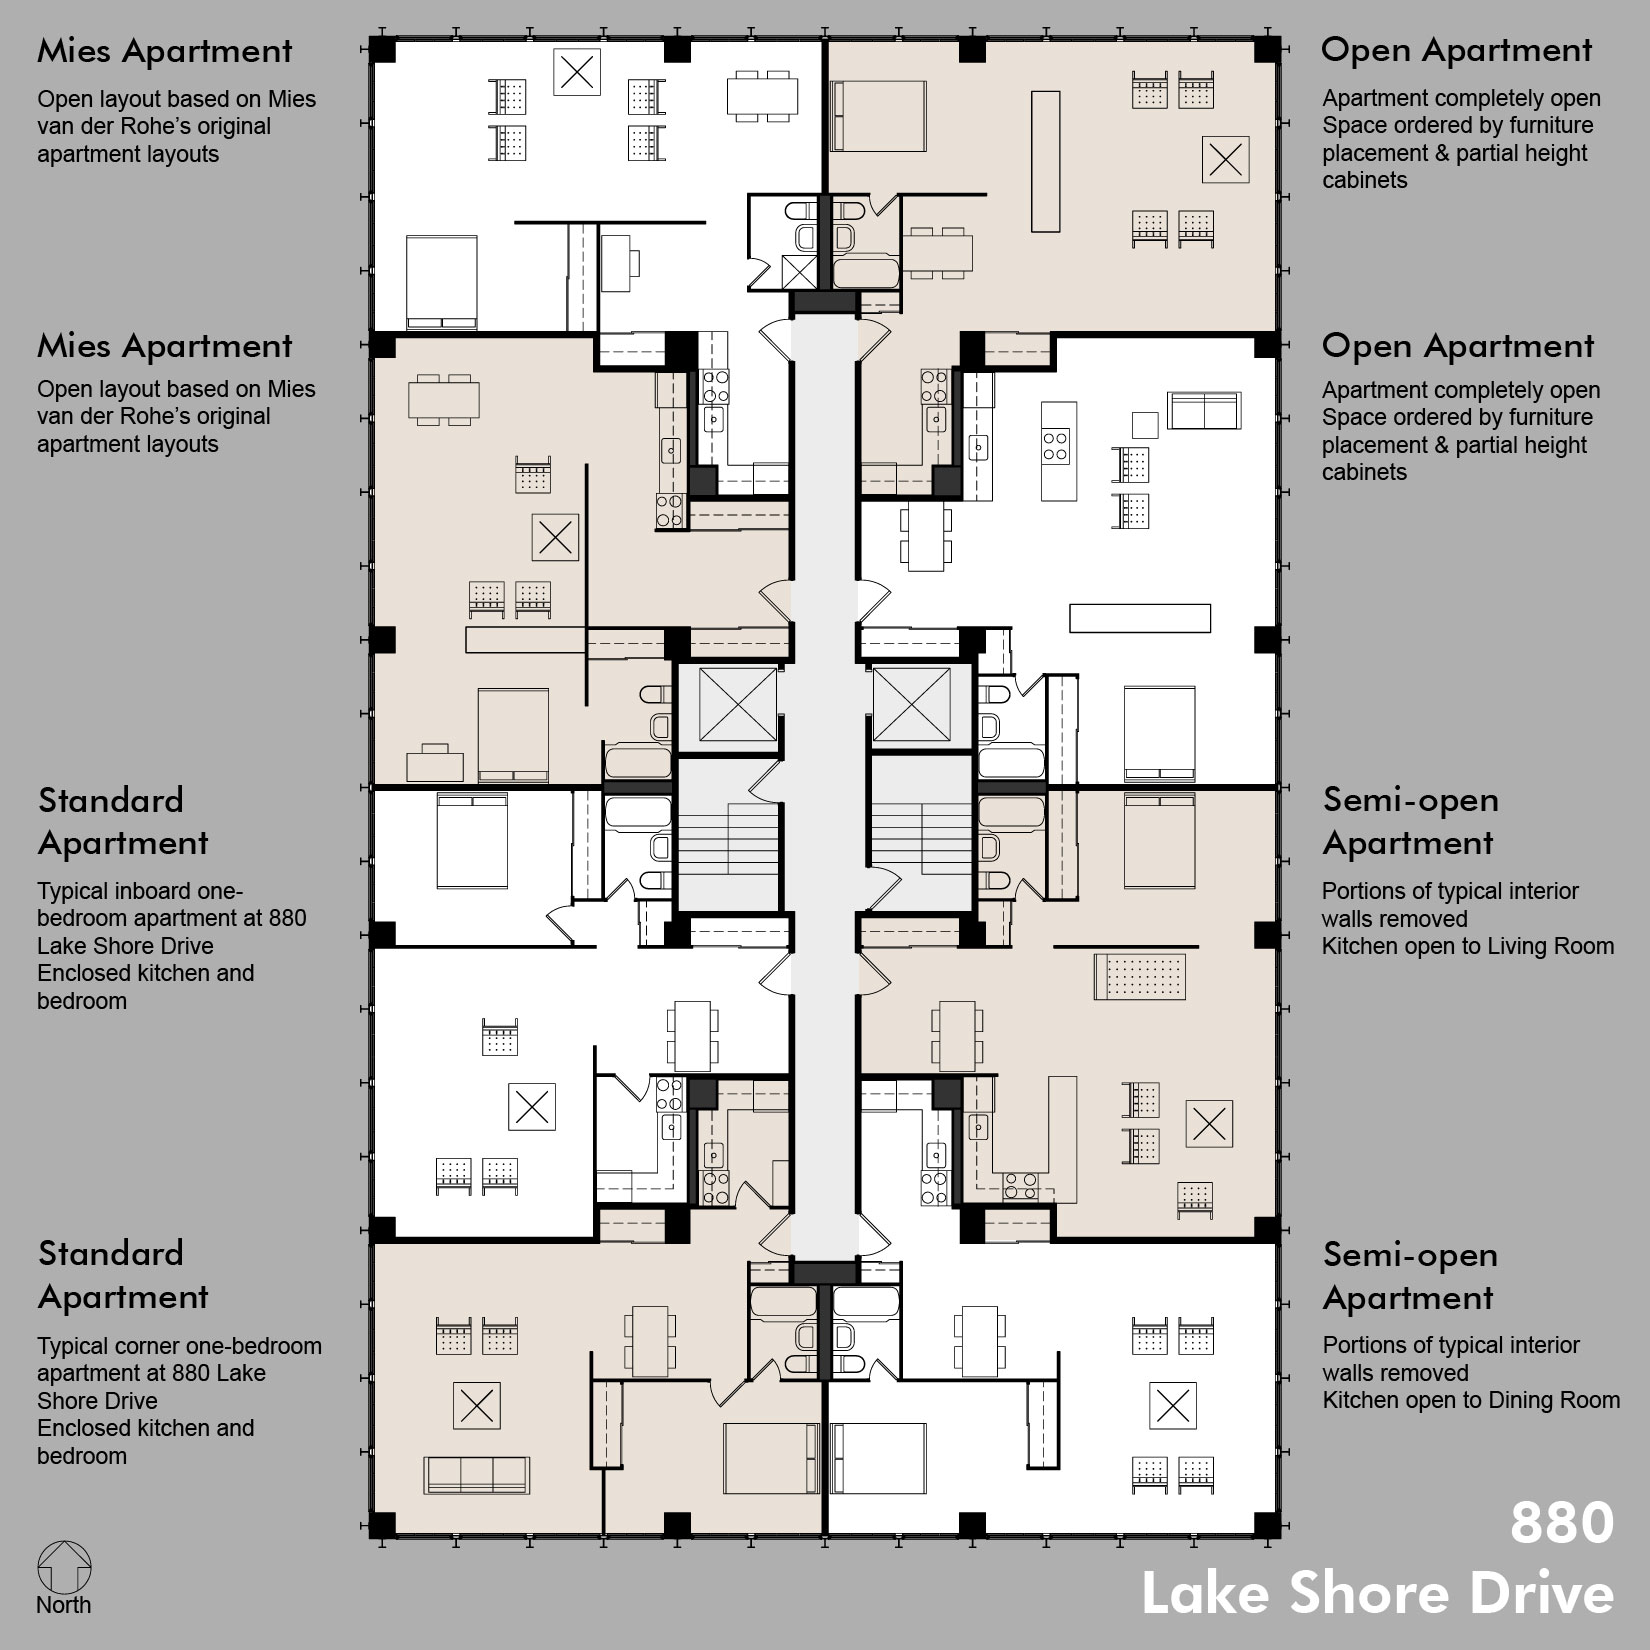 880floorplansincludingstandardaptg combining apartments malvernweather Choice Image